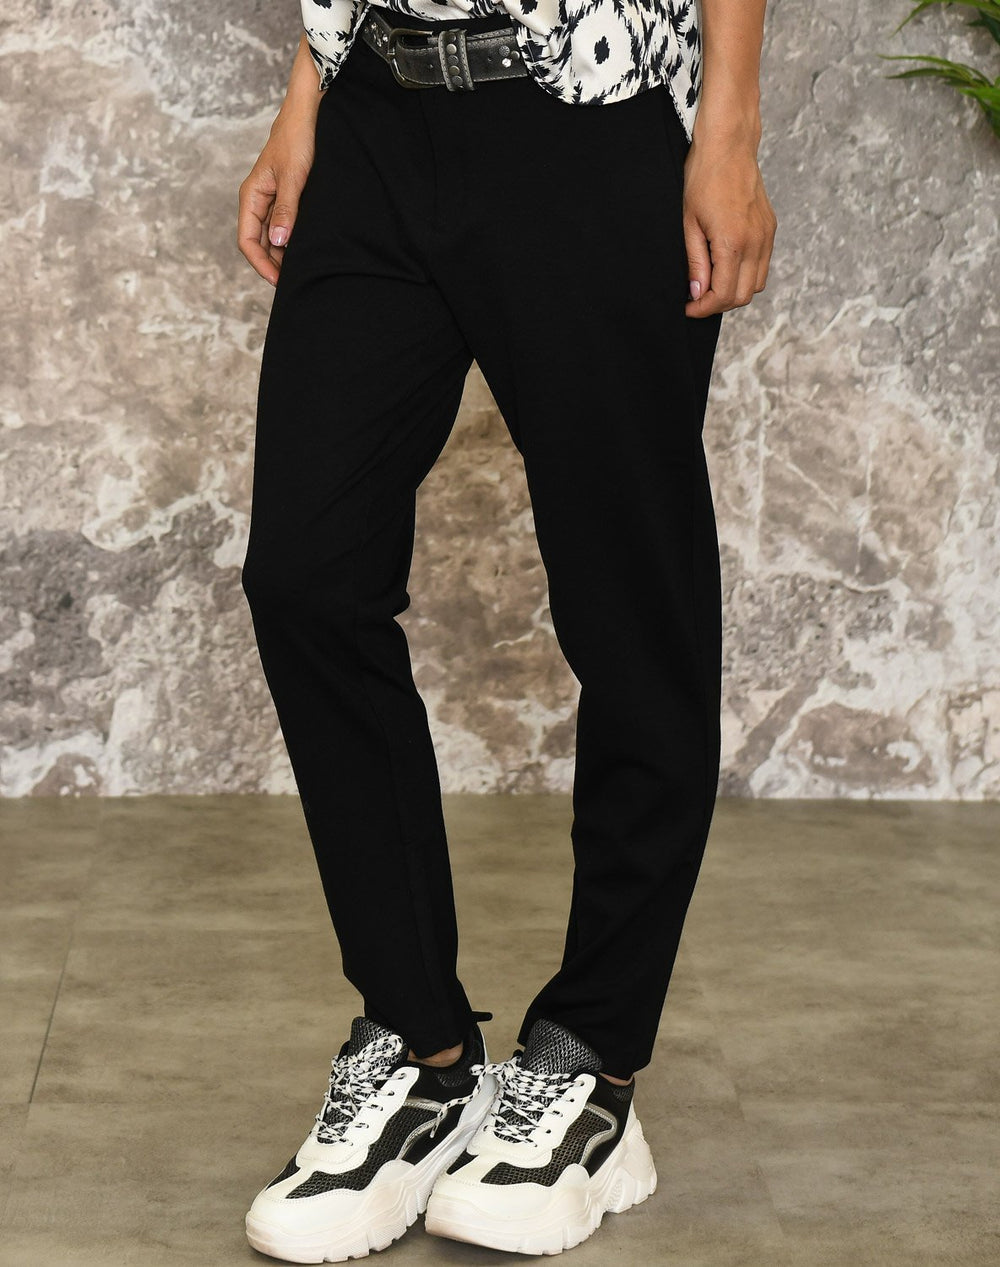 Soft Rebels Sofia cropped pant black - Online-Mode